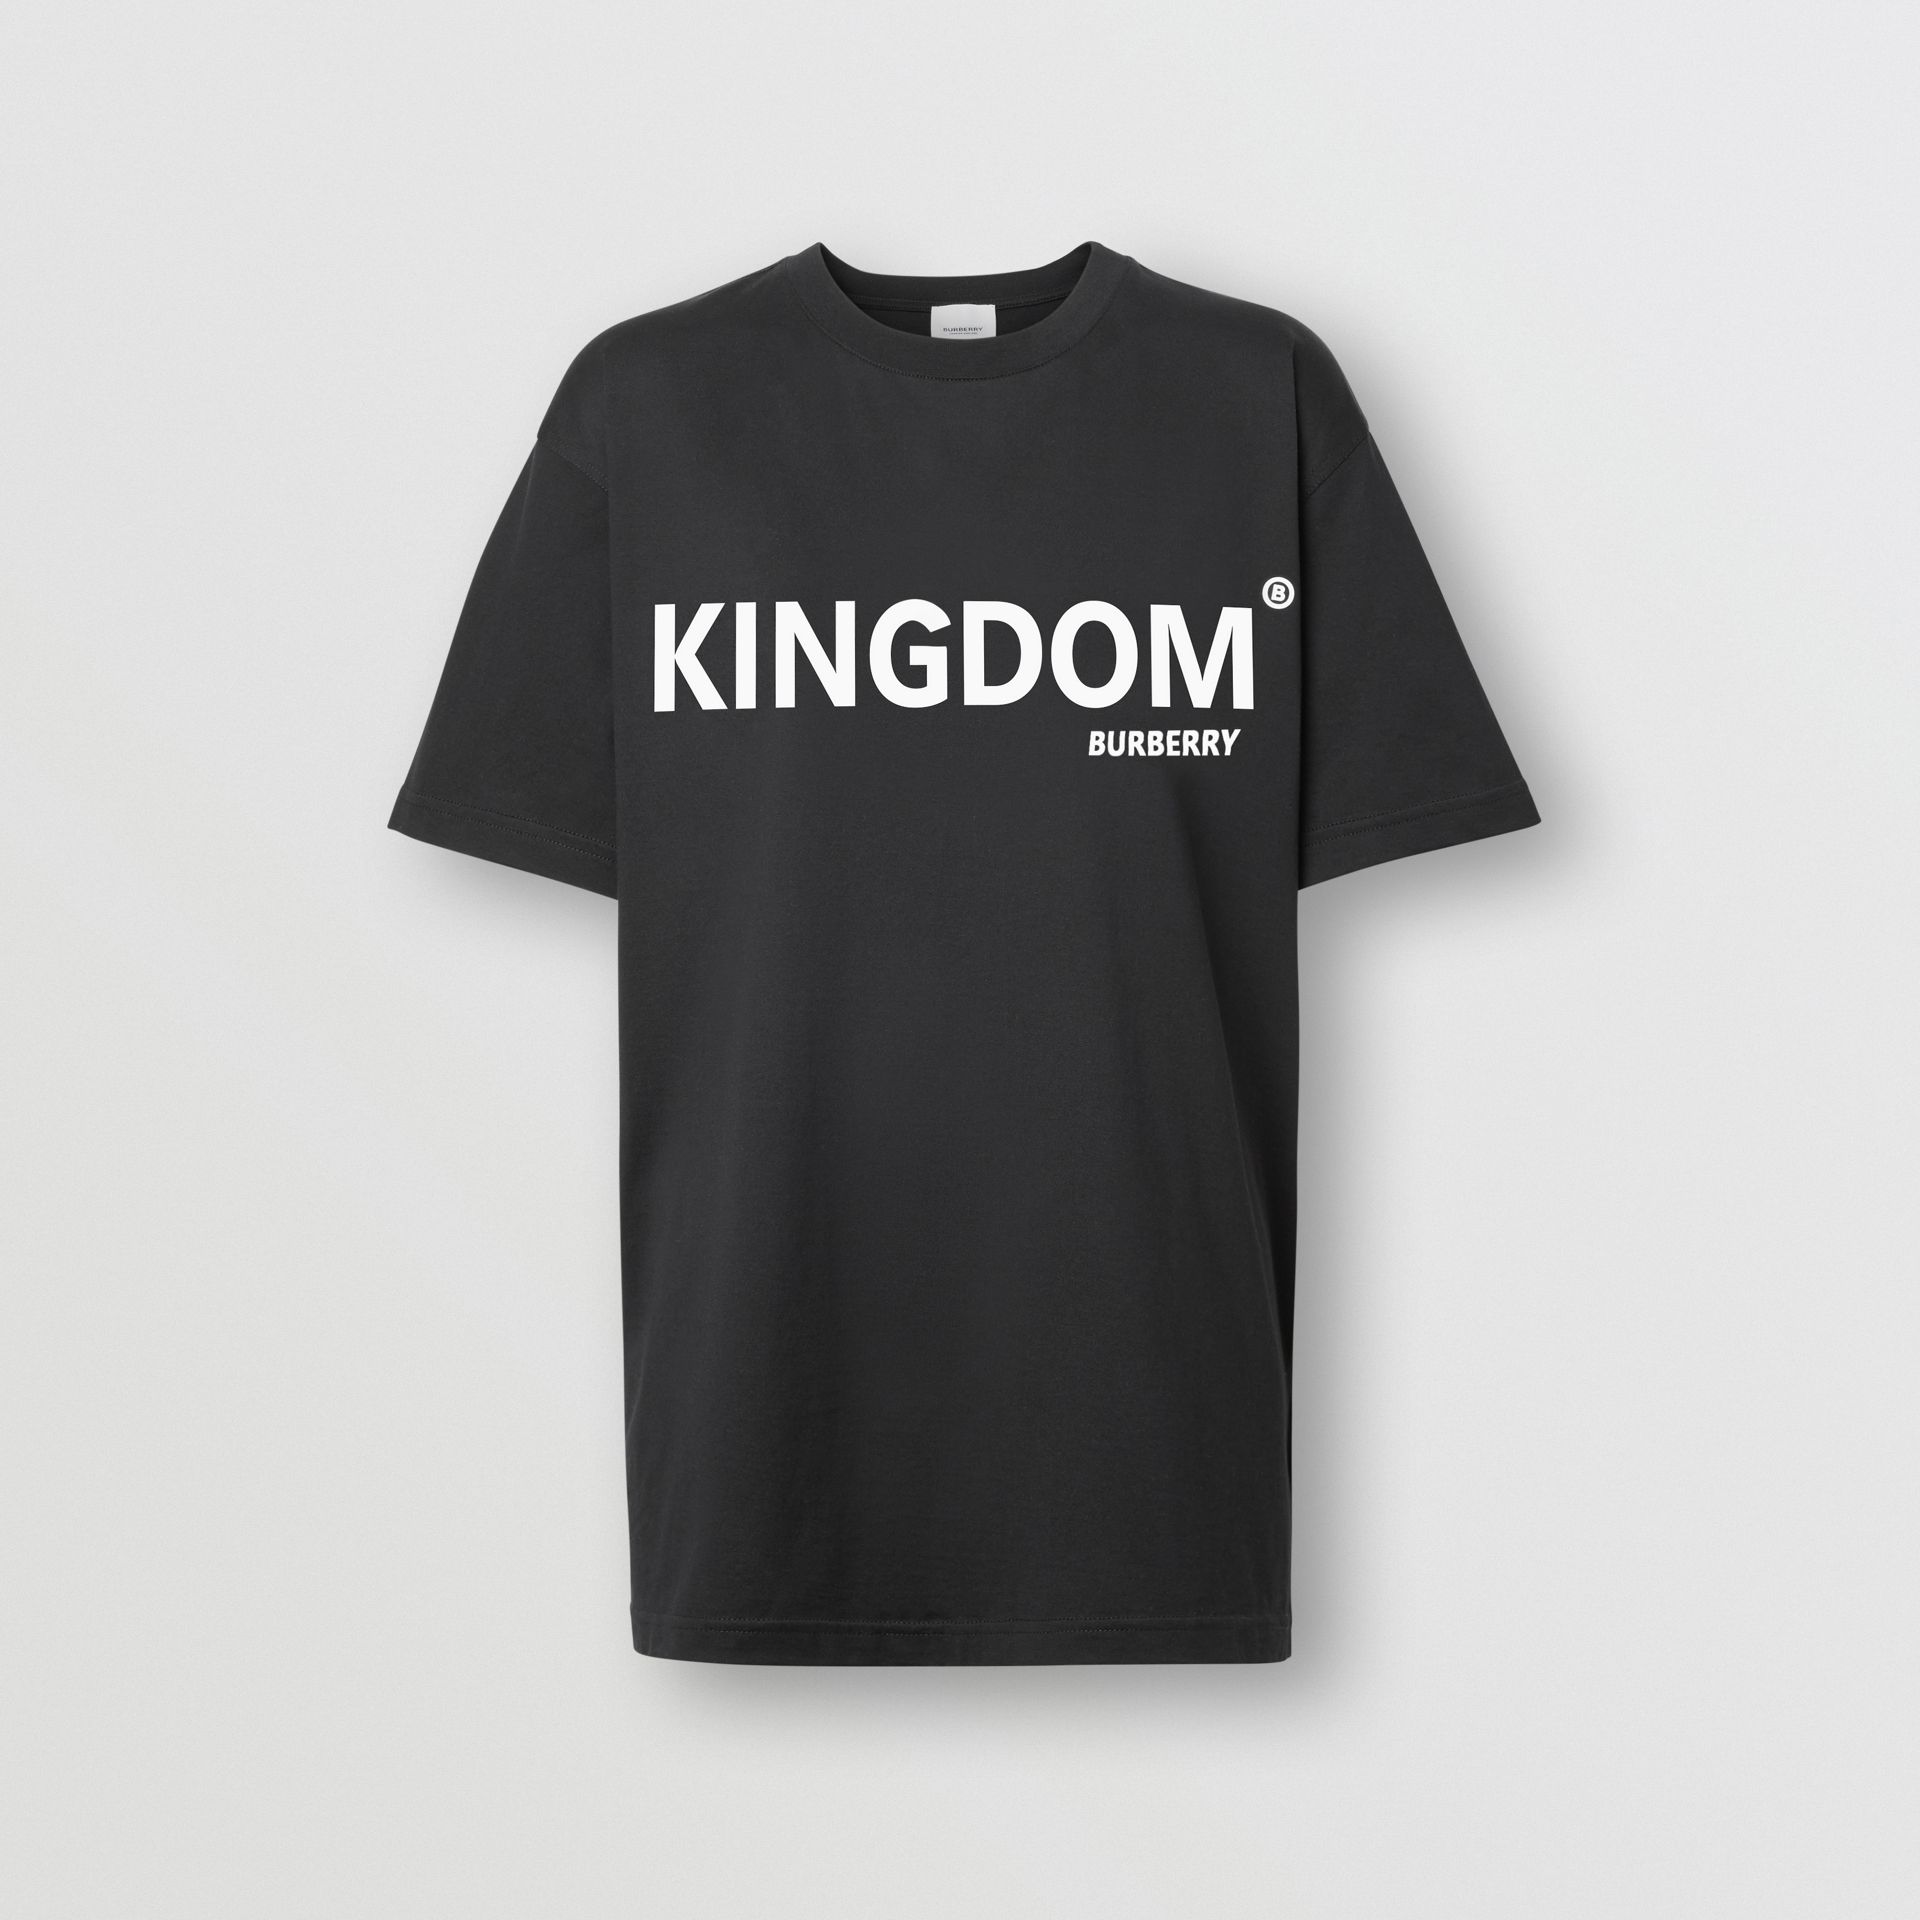 Kingdom Print Cotton Oversized T-shirt in Black - Women | Burberry - gallery image 3